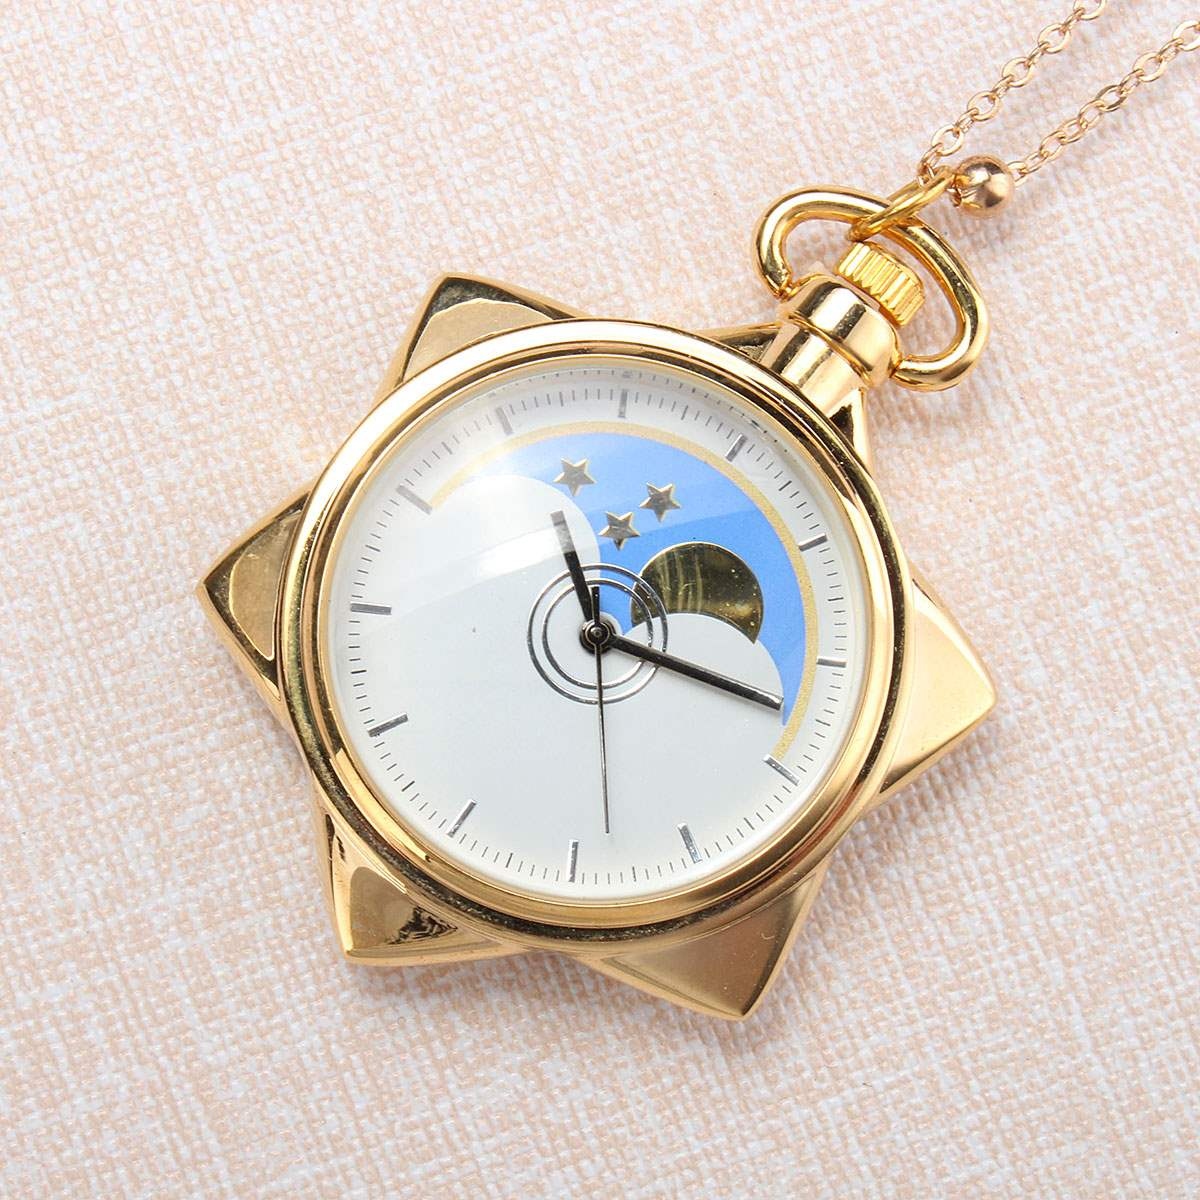 New Sailor Moon Anniversary Crystal Star Bolsillo Watch Necklace Pendant Chain Tuxedo Fans Cosplay Anime Accessories With Box hot sale sailor where sailor moon march hare lemon yellow synthetic hair cosplay wig